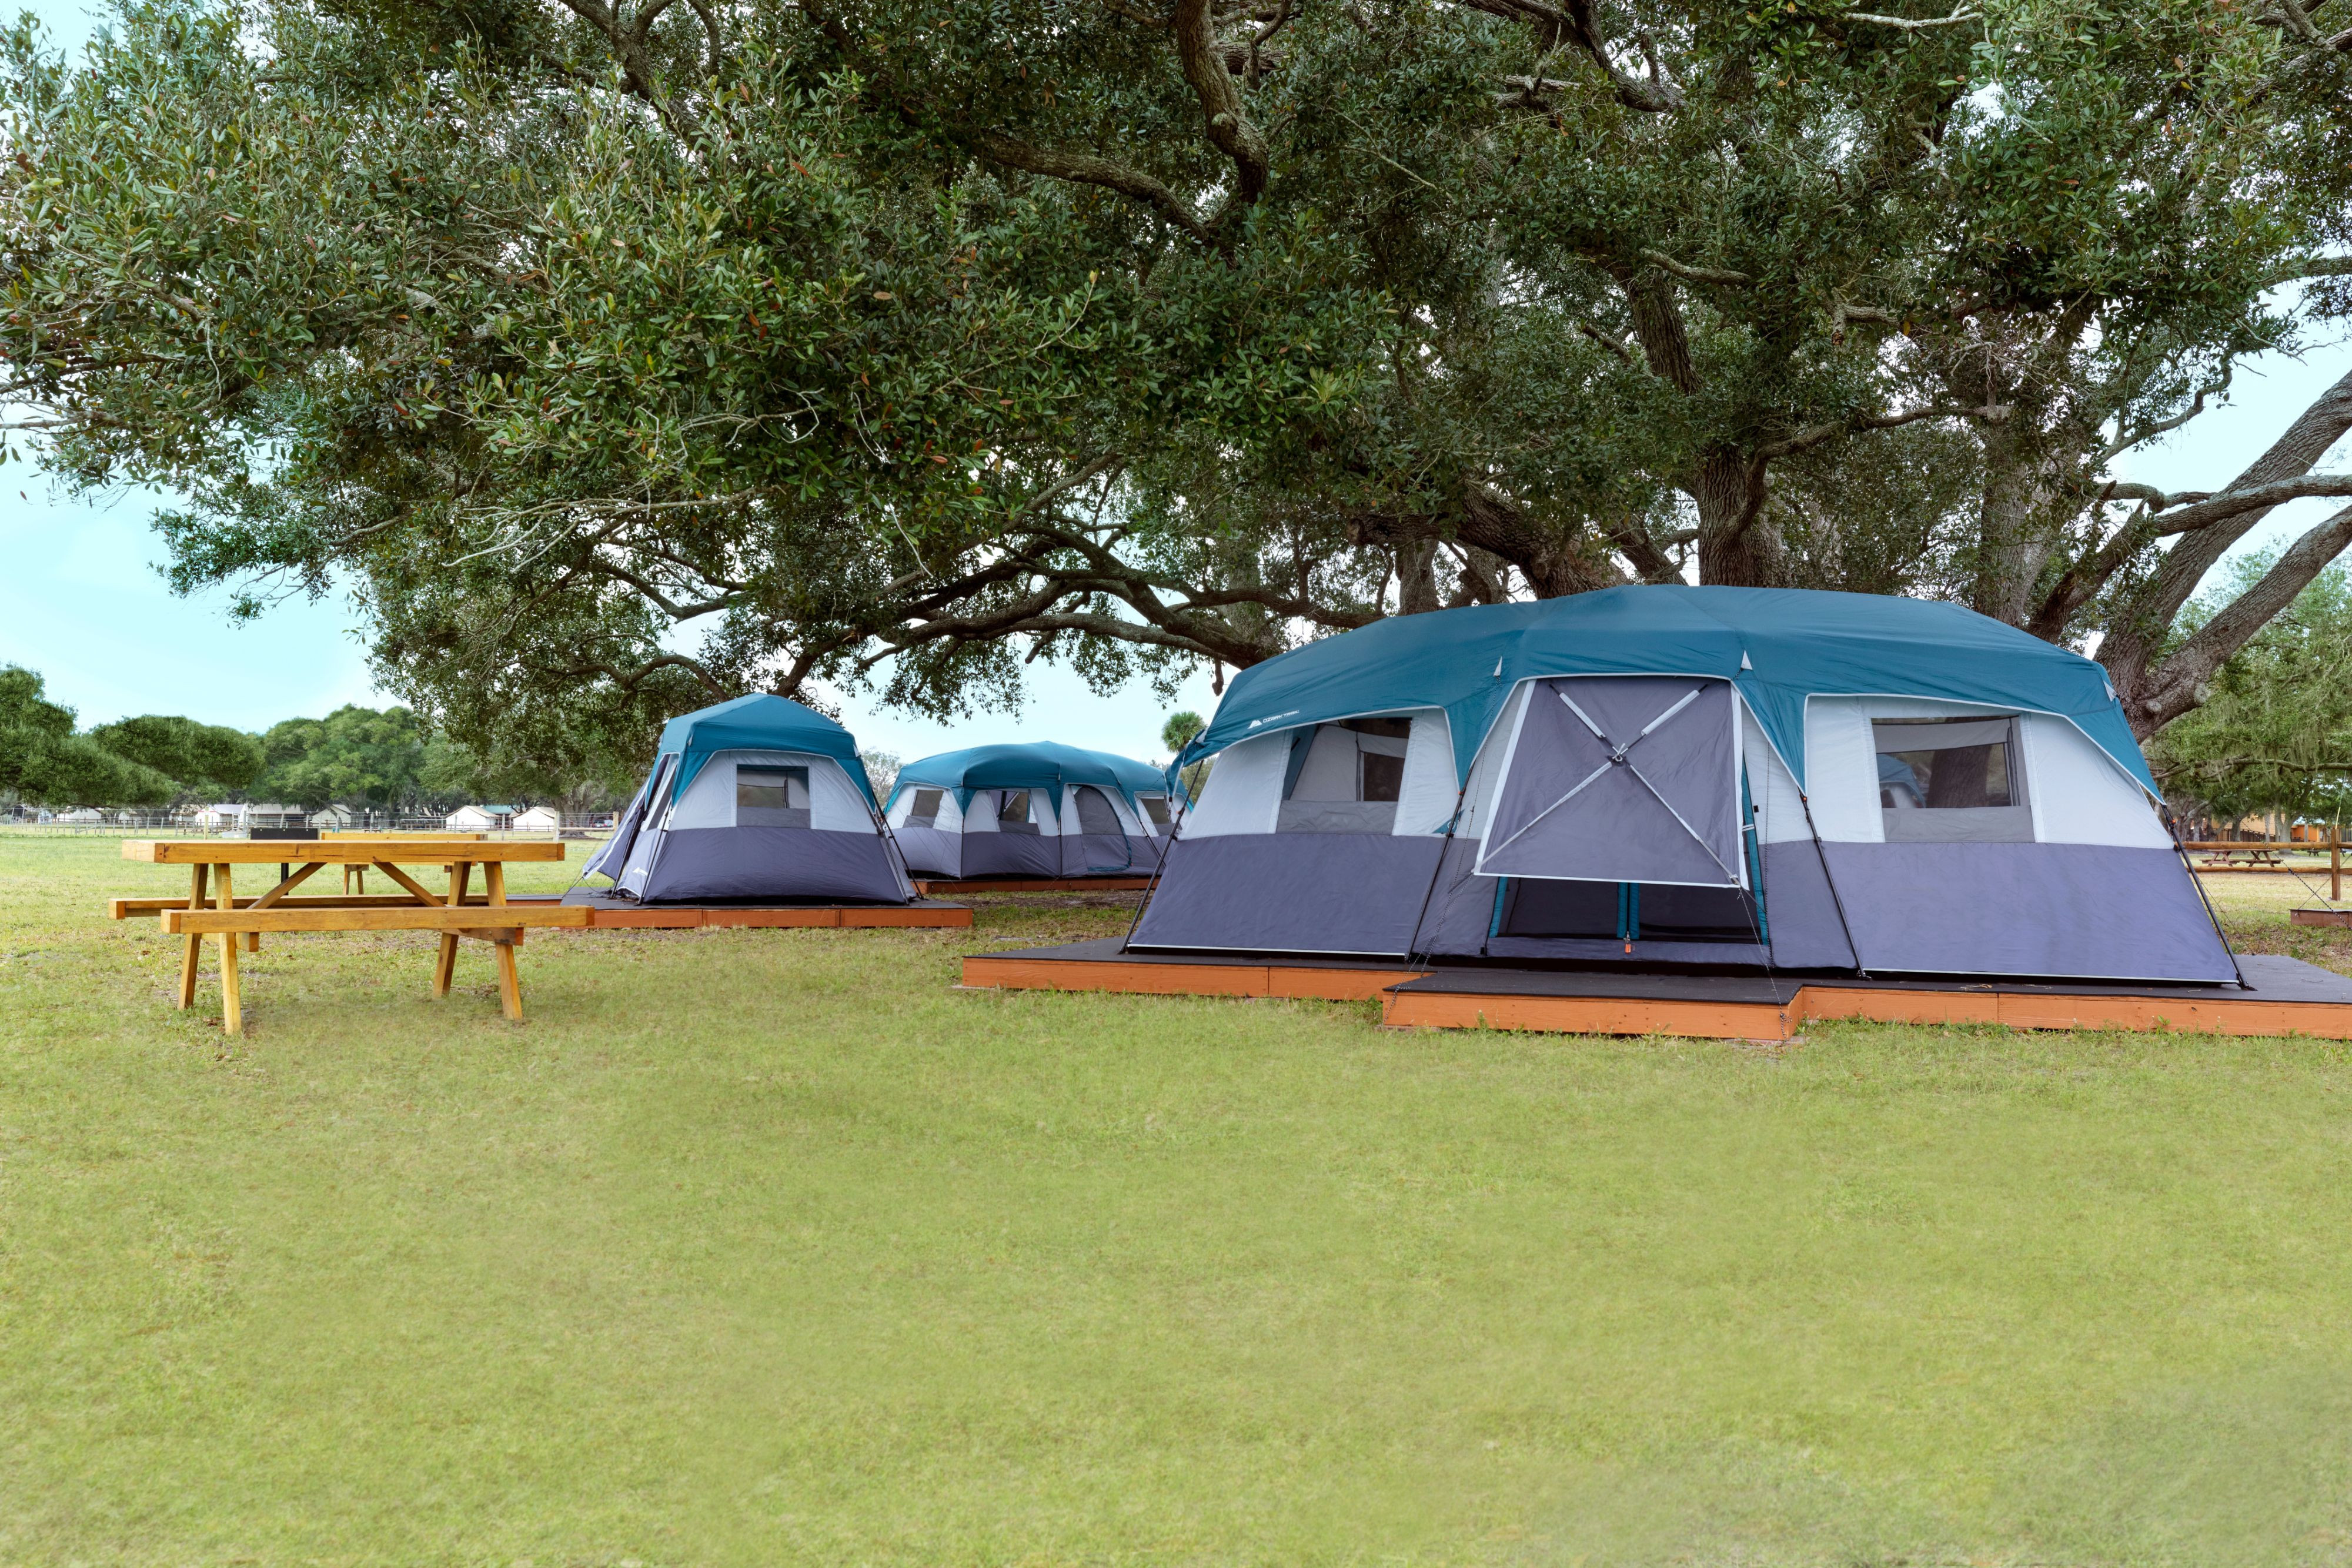 Camping tent - Westgate River Ranch